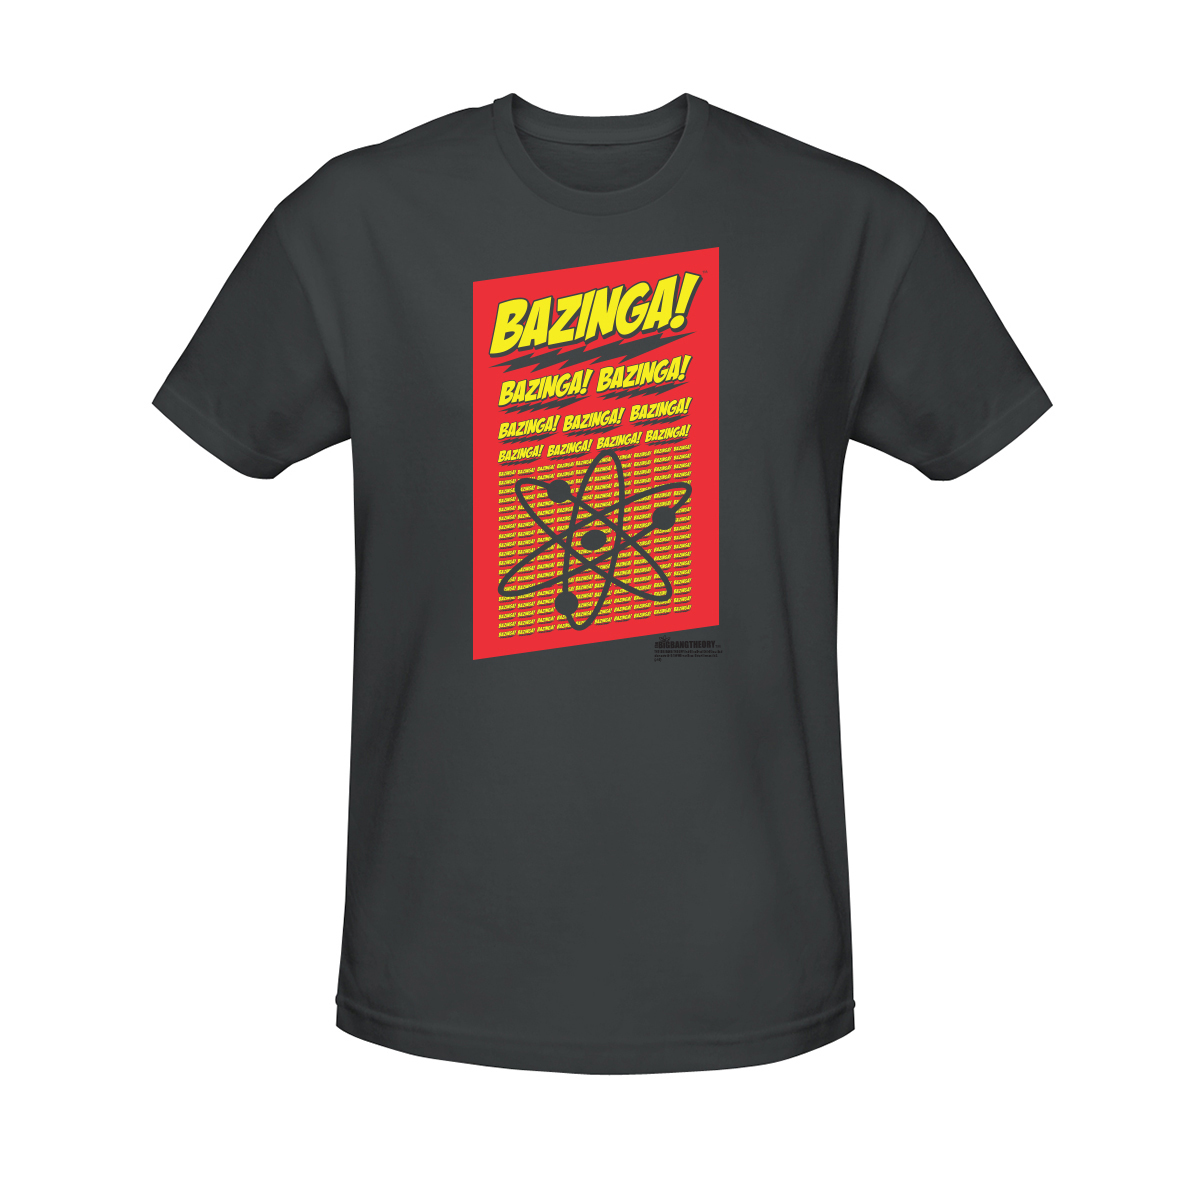 The Big Bang Theory 200th Bazinga T-Shirt